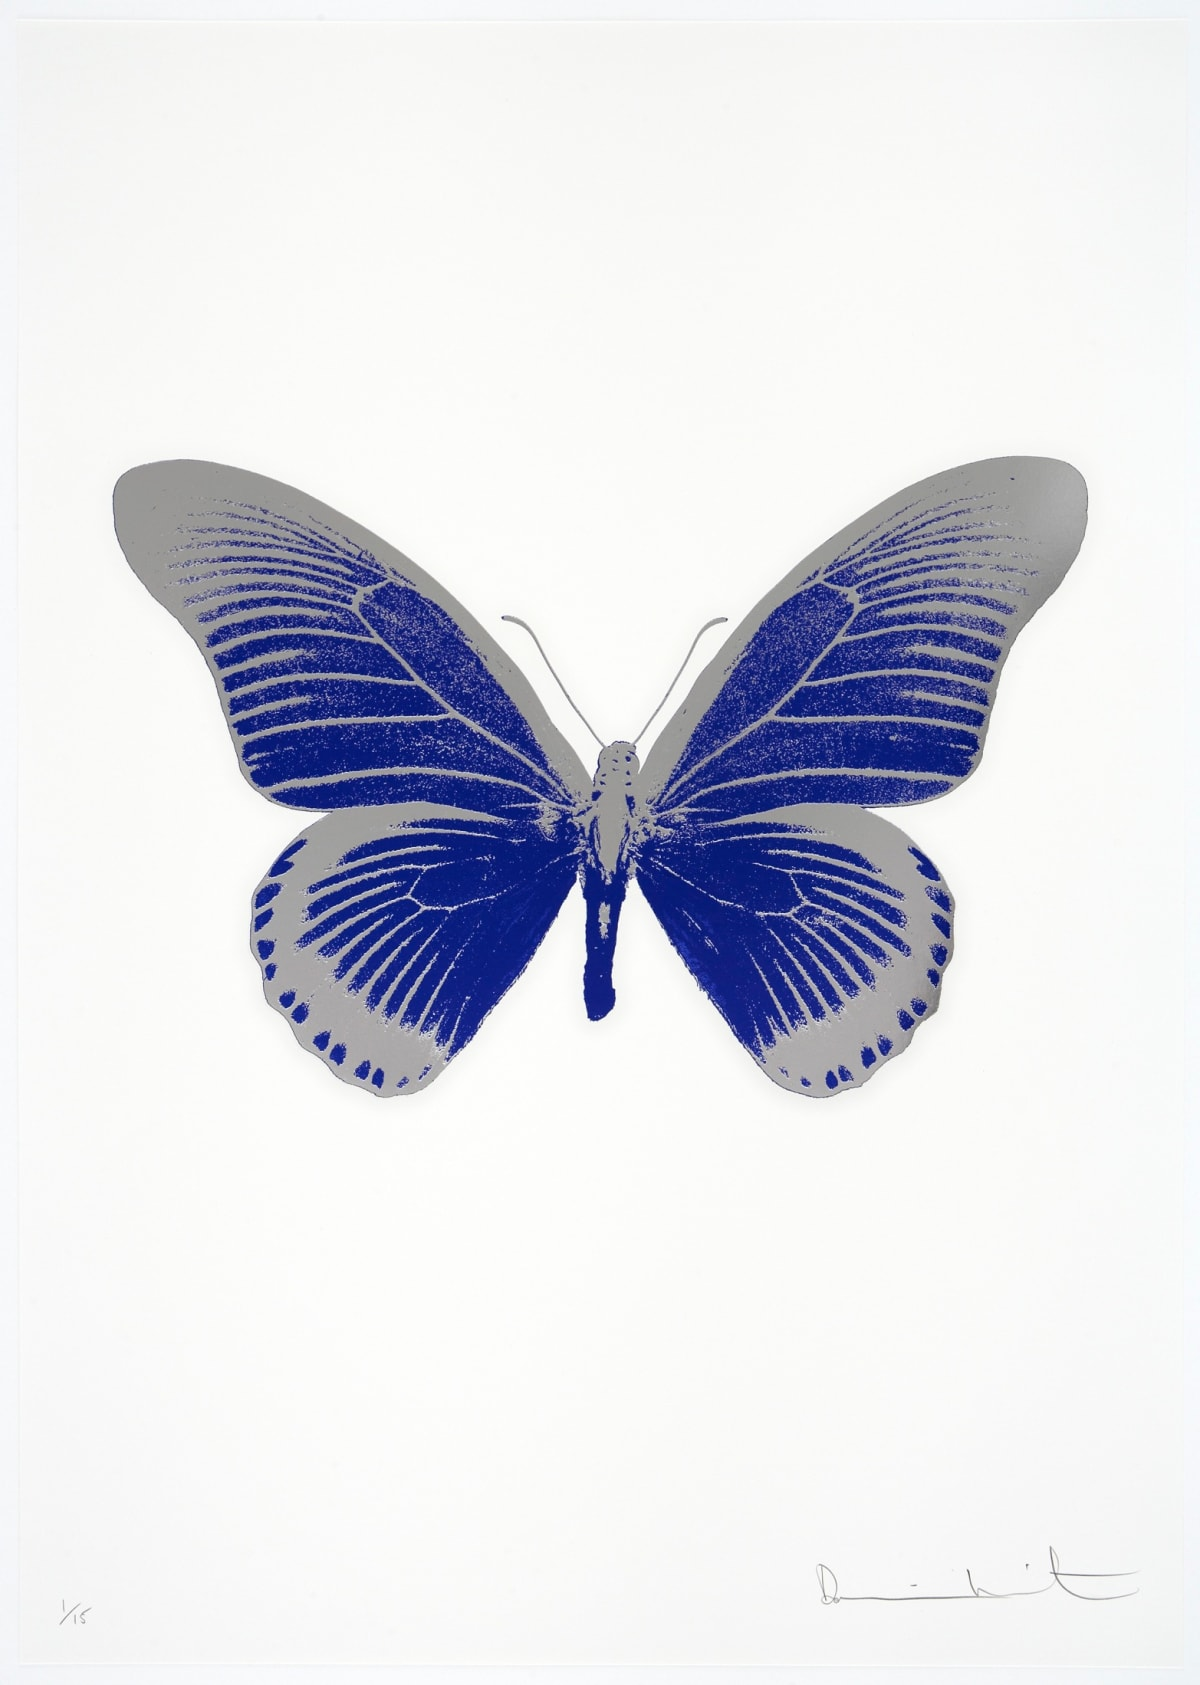 Damien Hirst The Souls IV - Westminster Blue/Silver Gloss Damien Hirst butterfly foil print for sale Damien Hirst print for sale , 2010 2 colour foil block on 300gsm Arches 88 archival paper. Signed and numbered. Published by Paul Stolper and Other Criteria 72 x 51cm OC7983 / 1418-6 Edition of 15